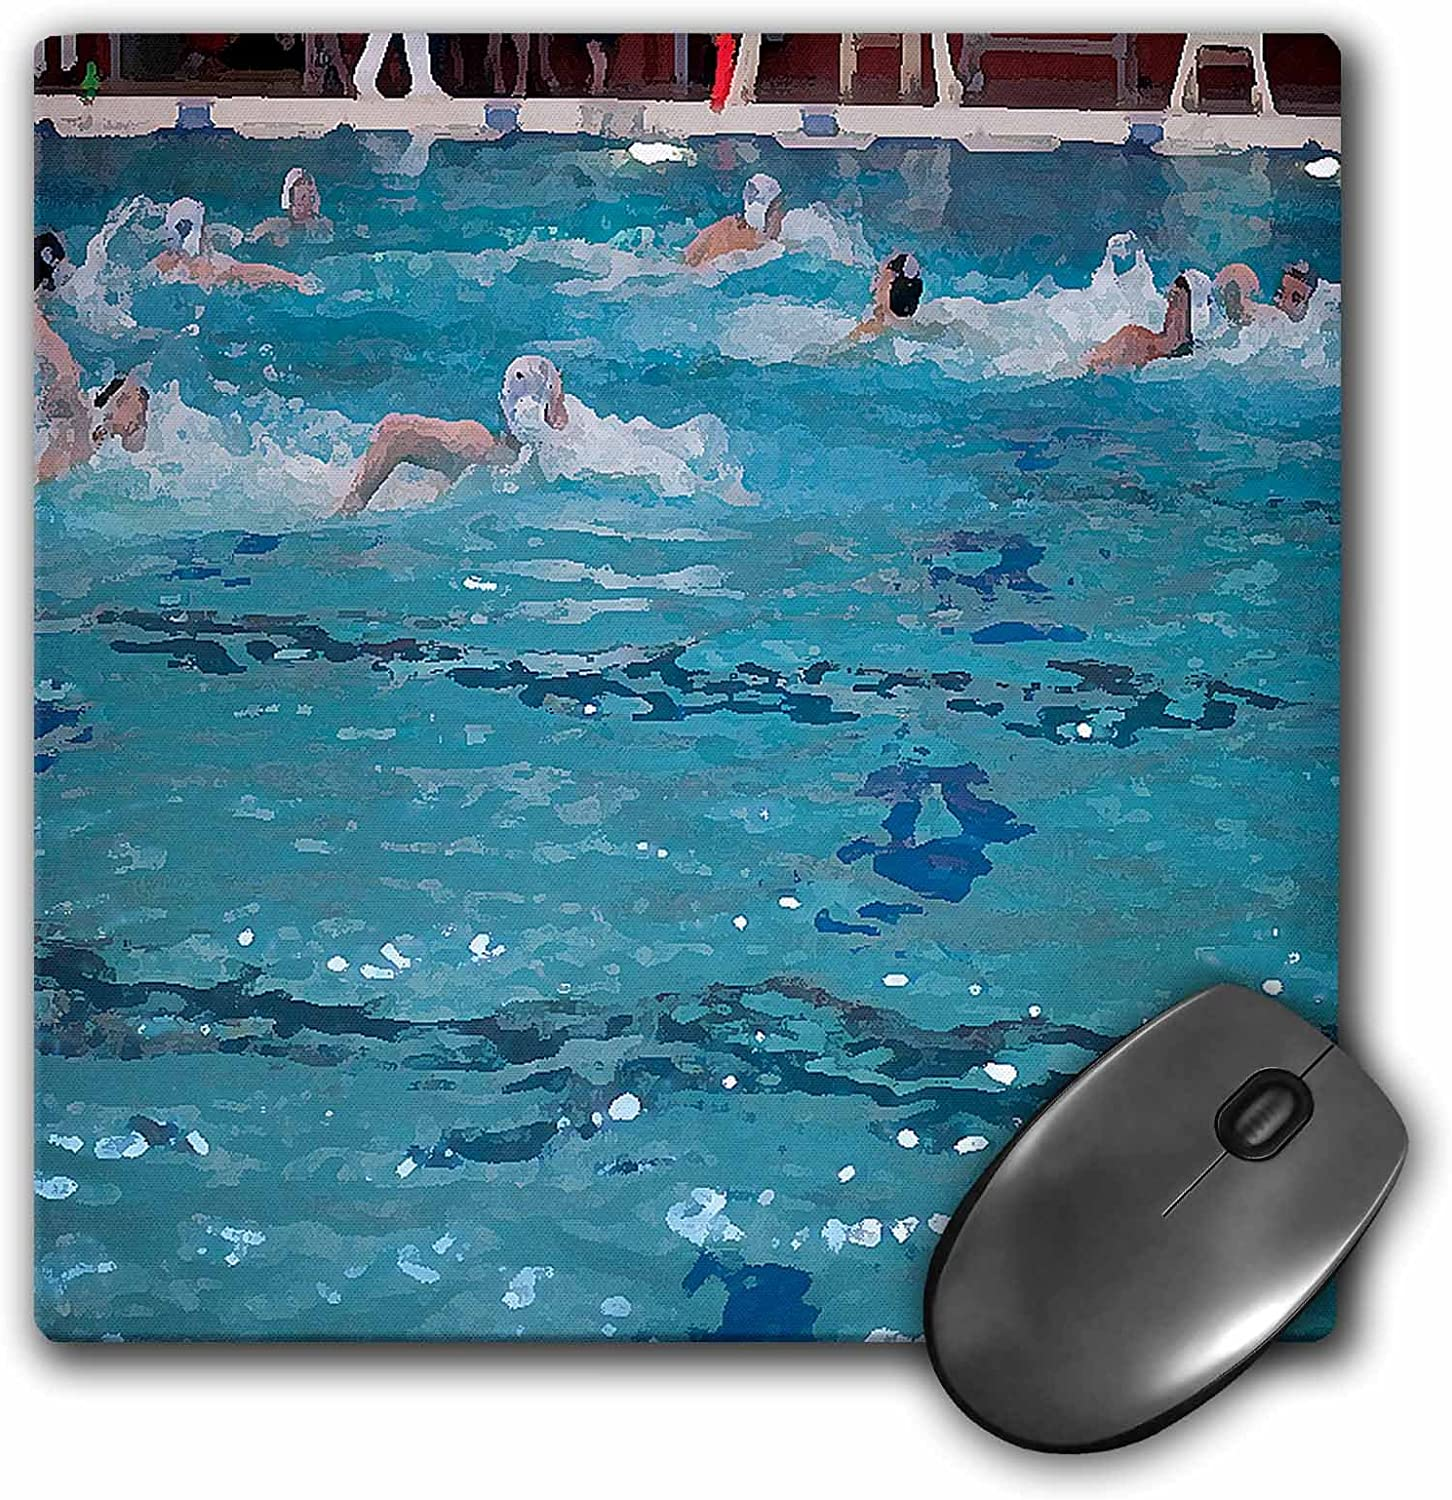 Amazon Com 3drose Boys Water Polo Team Swimming To Get The Ball Into The Net At A Swimming Pool In Cedar City Utah Mouse Pad Mp 50522 1 Office Products